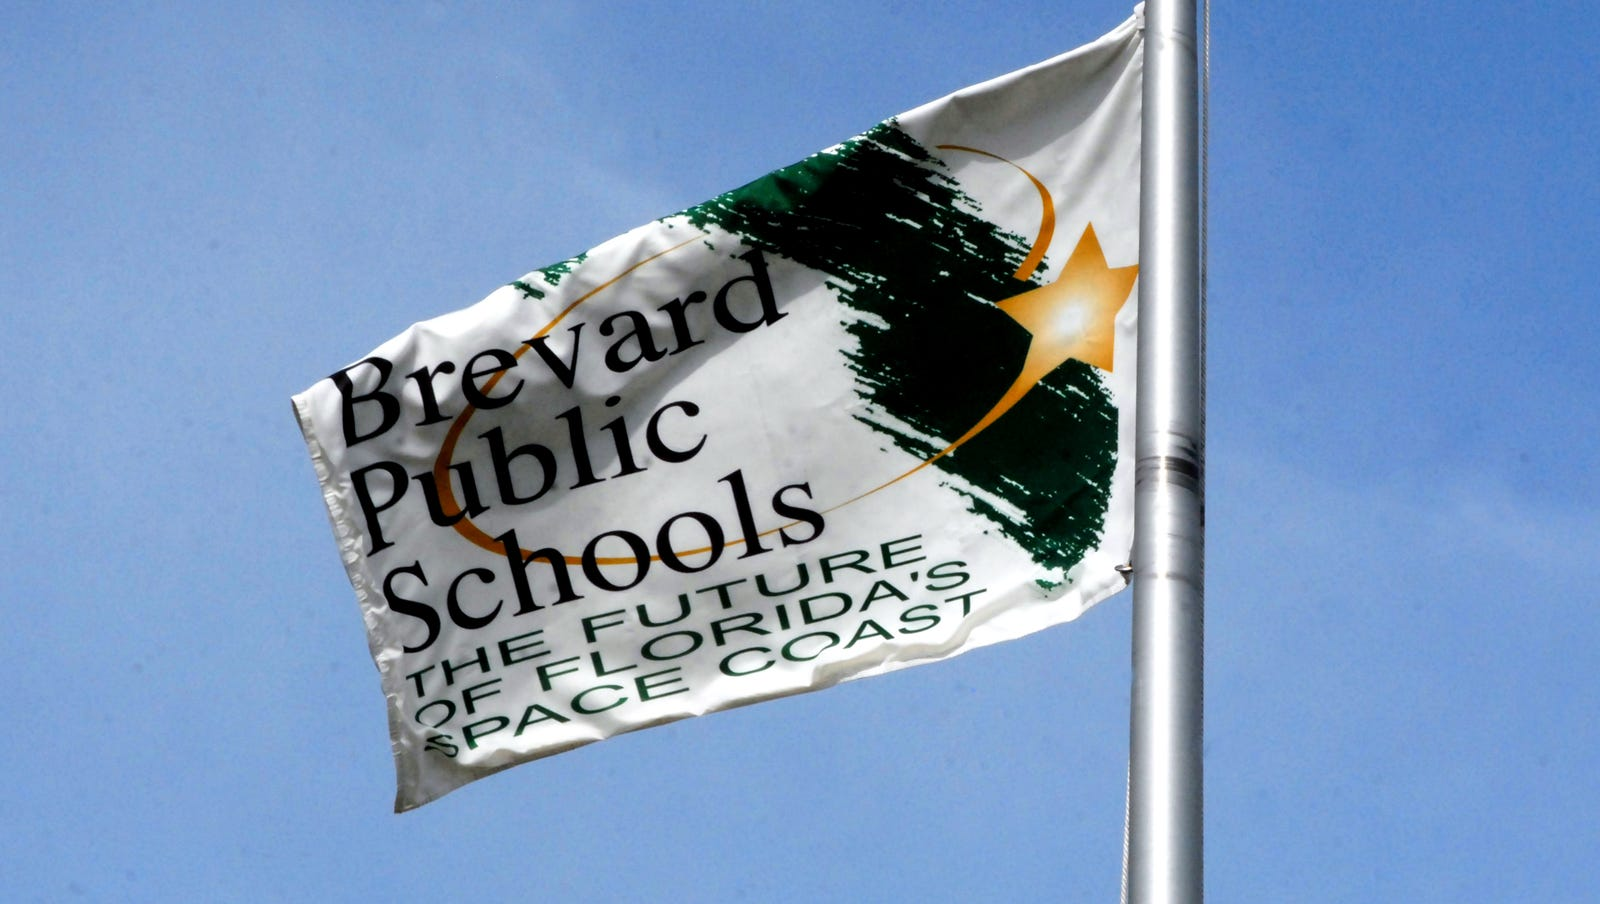 A Month After Parkland Brevard Schools Still Bombarded With Threats